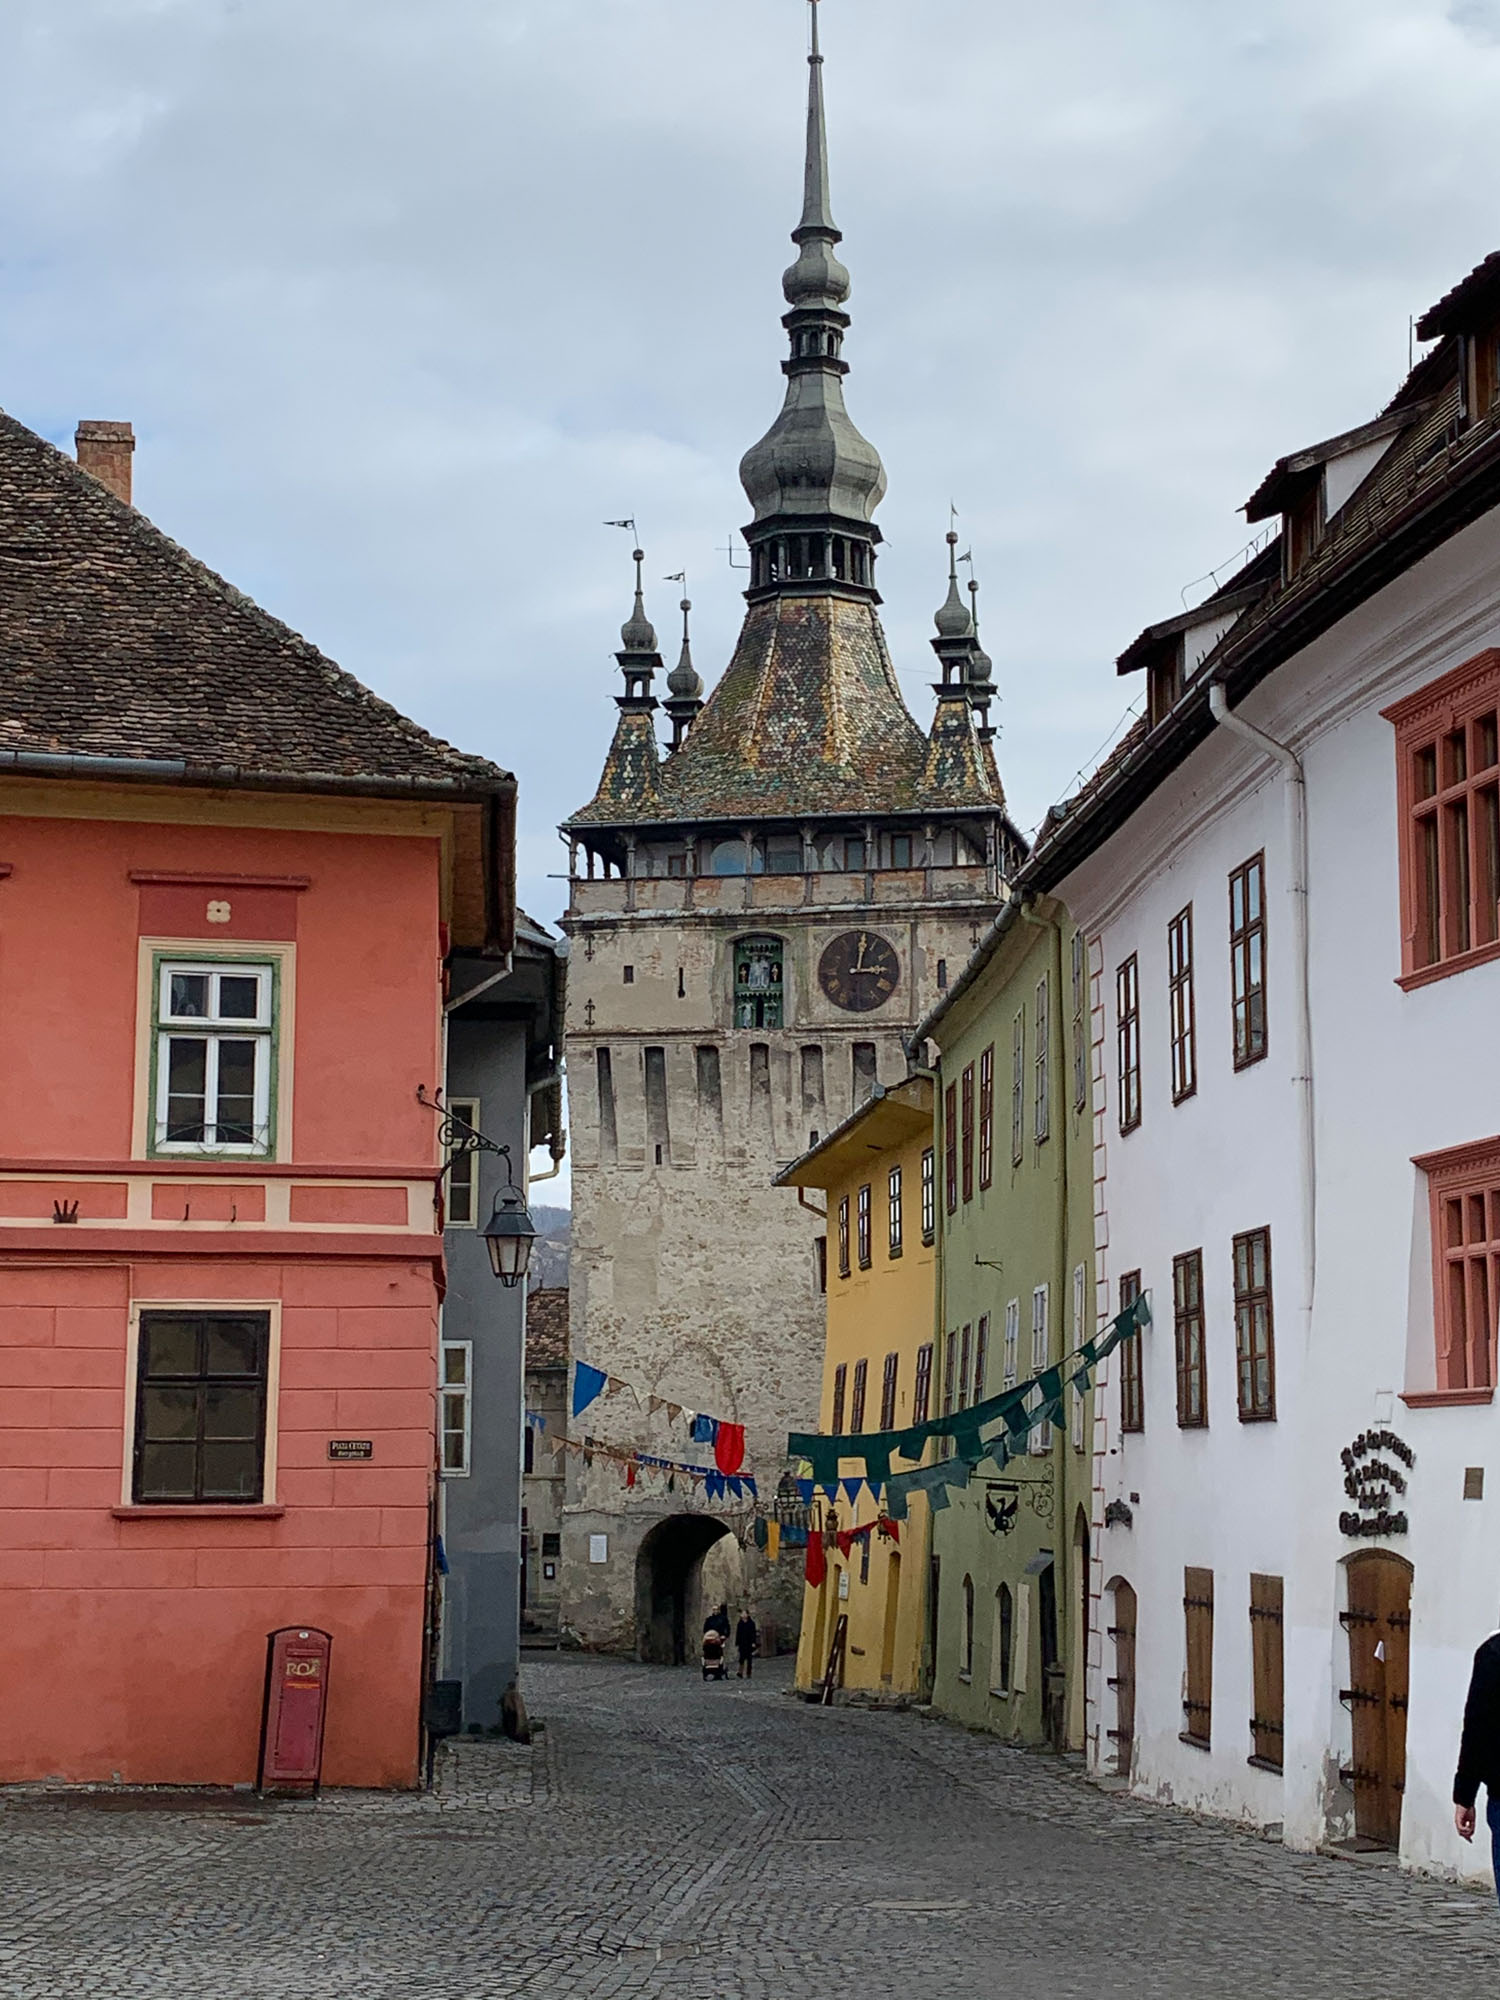 Check out the vibrant streets of picture-perfect Sighișoara.